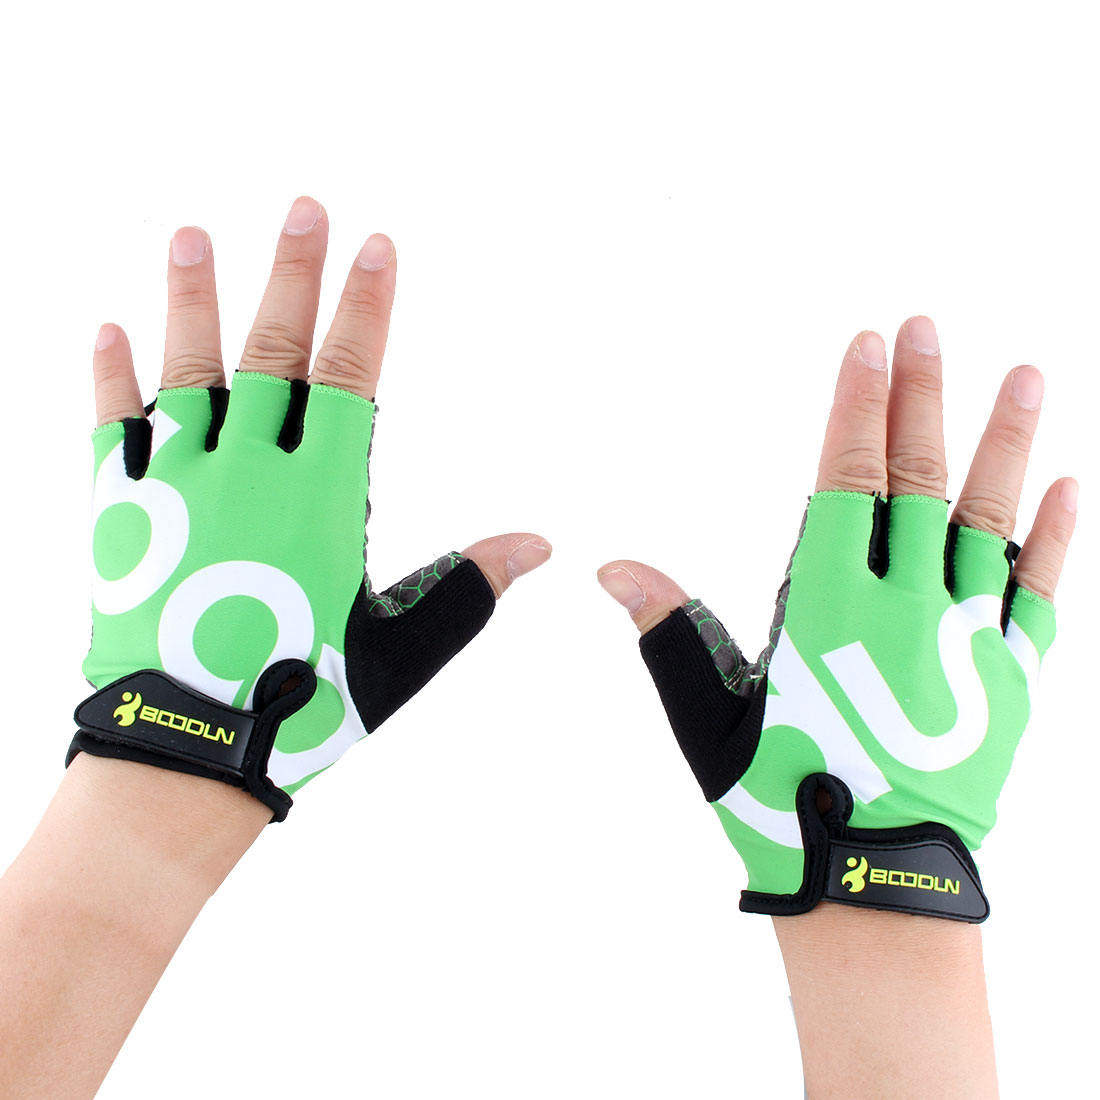 BOODUN Authorized Unisex Outdoor Sports Cycling Biking Exercise Adjustable Fitness Half Finger Gloves Green M Size Pair